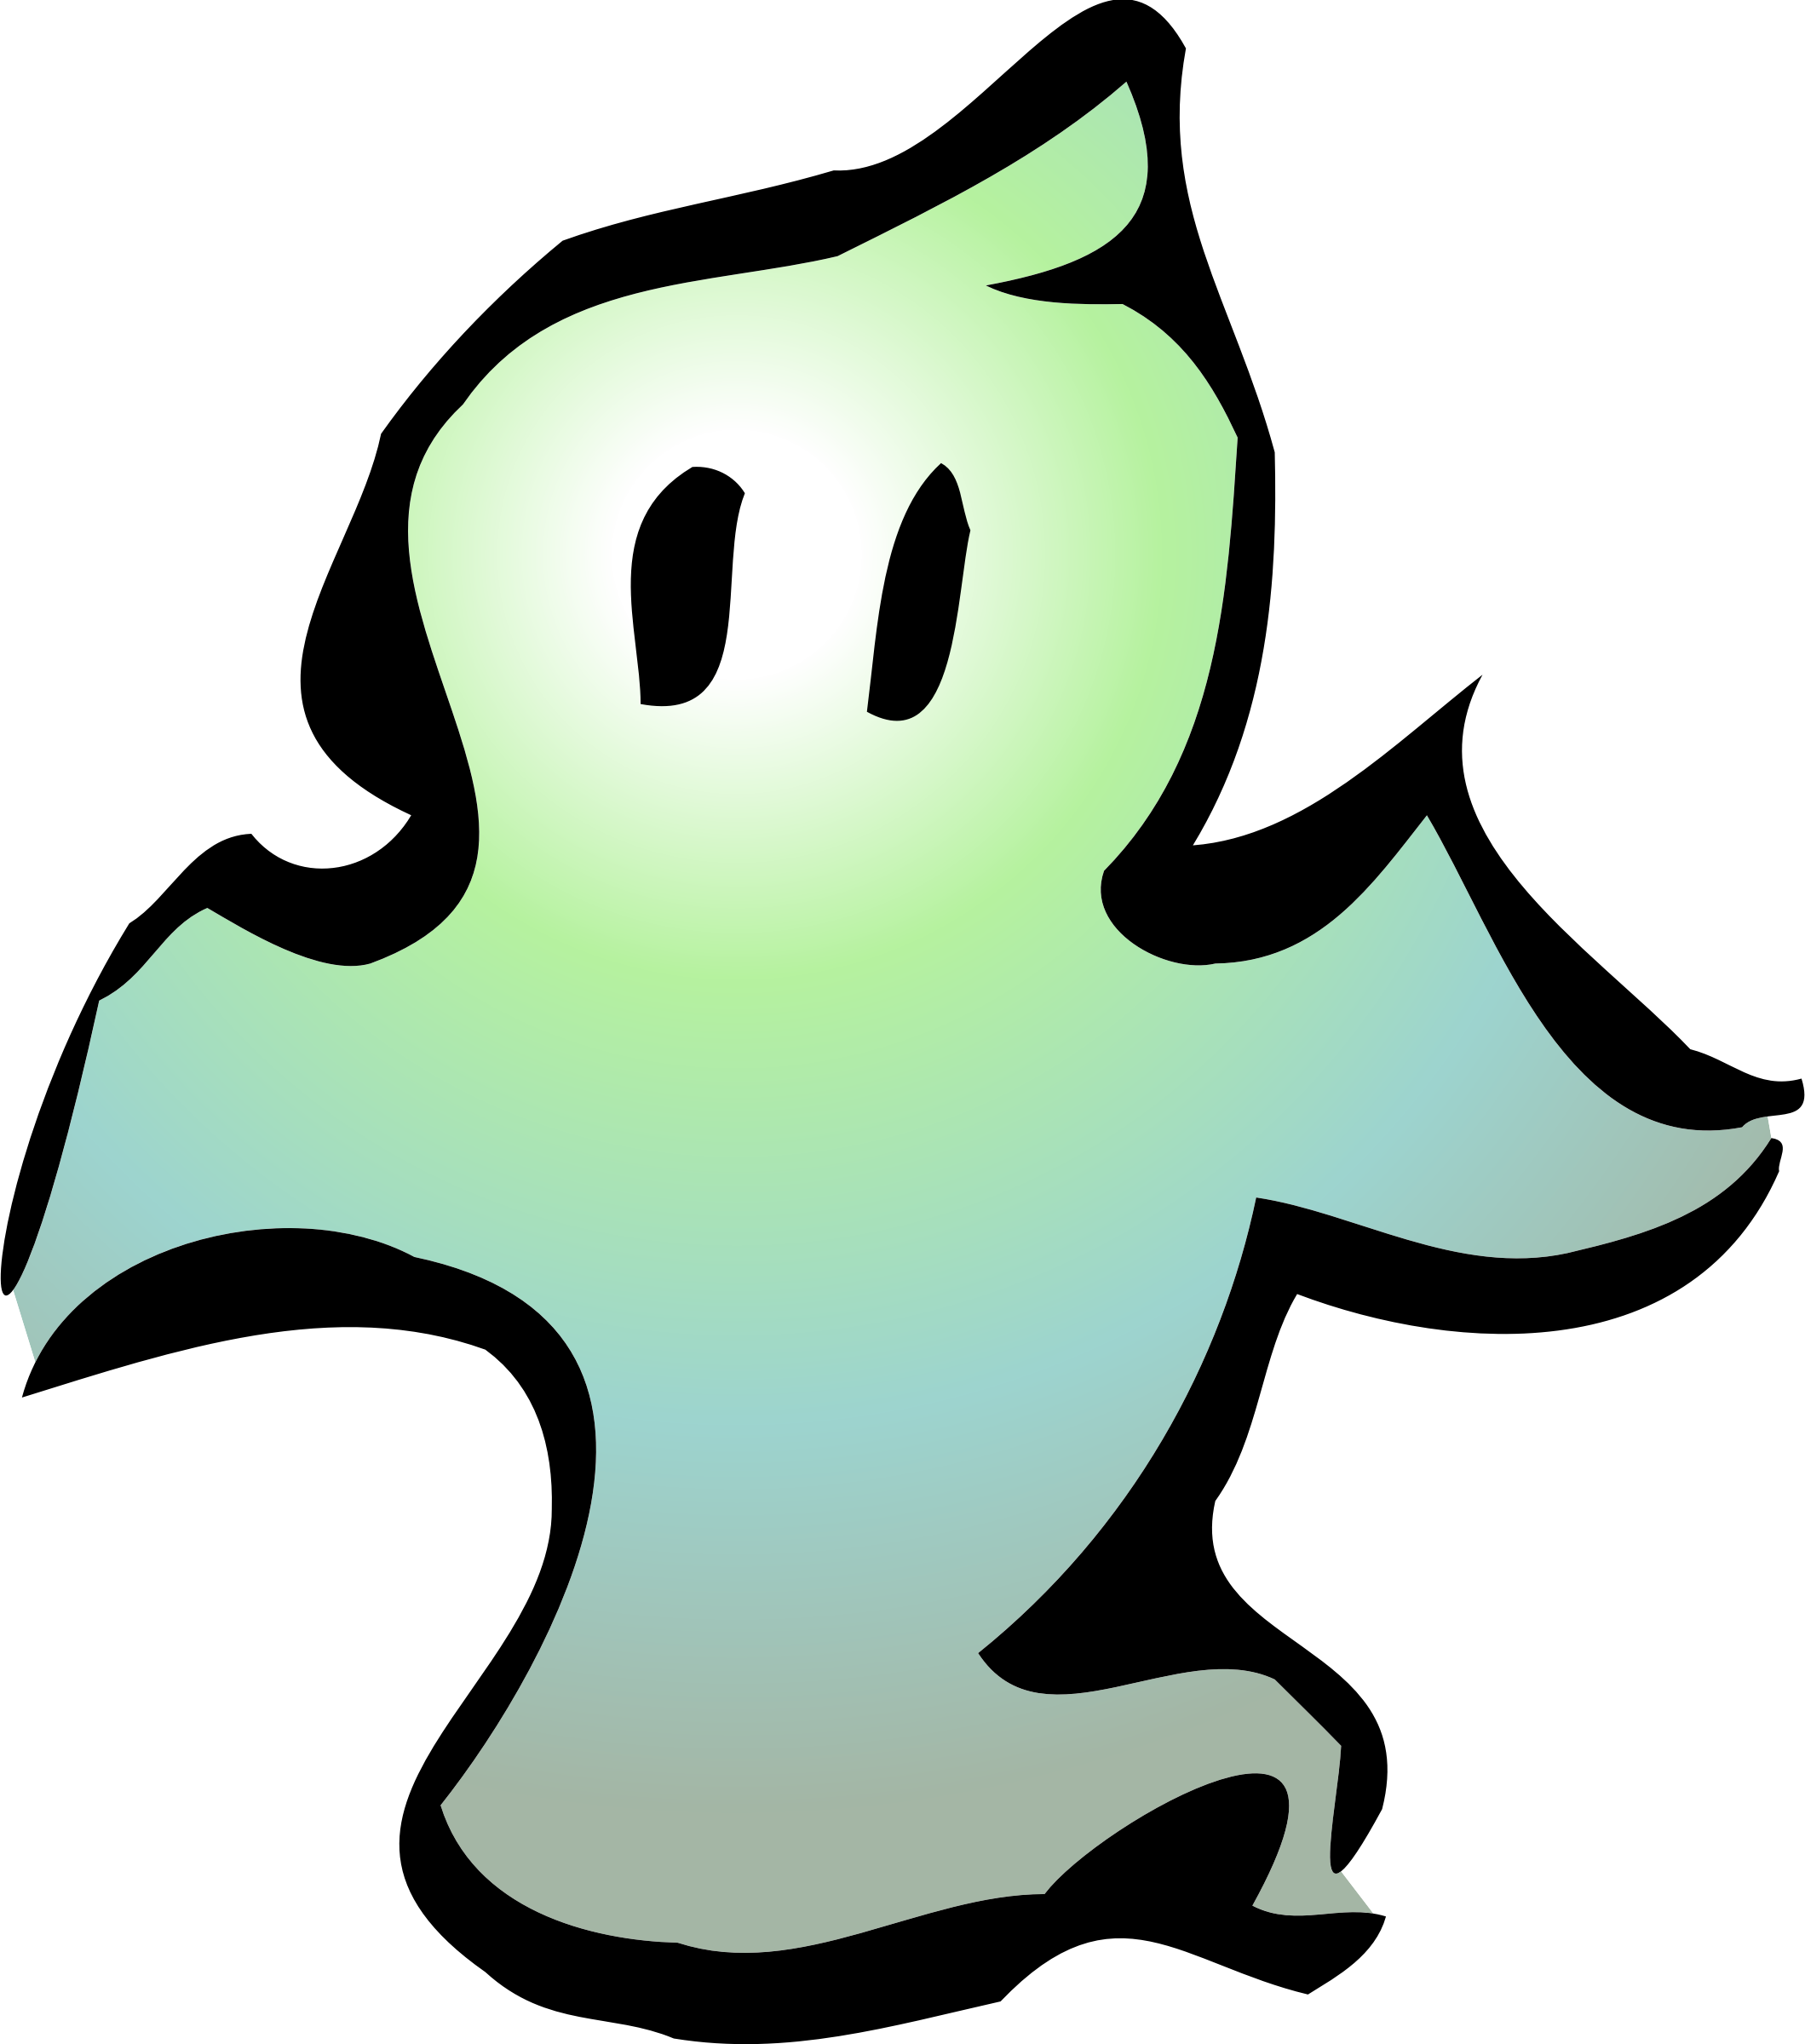 ghost vector clipart image photo #17934